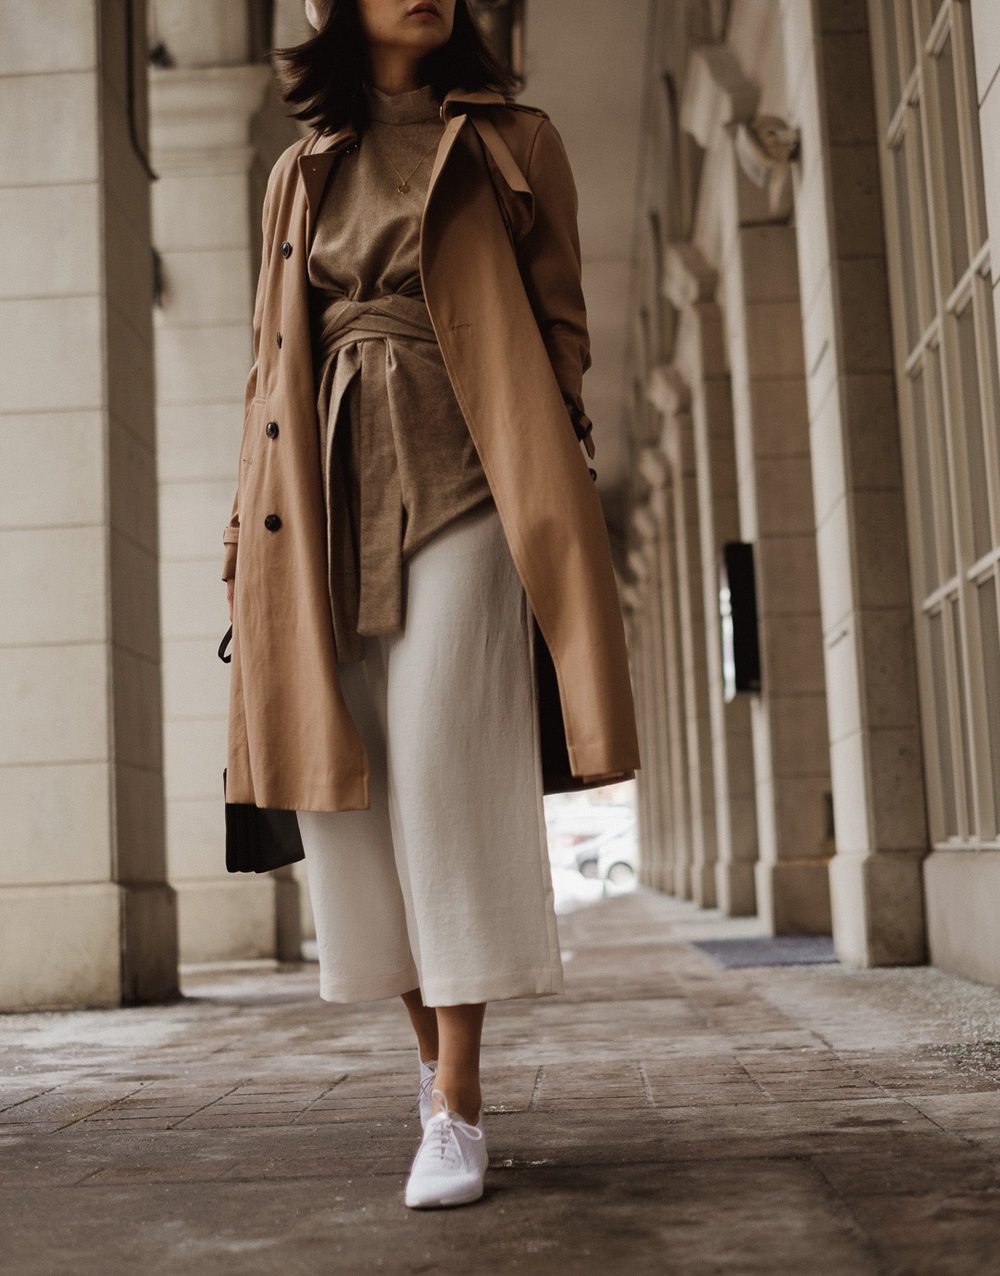 spring-trenchcoat-outfit.jpg